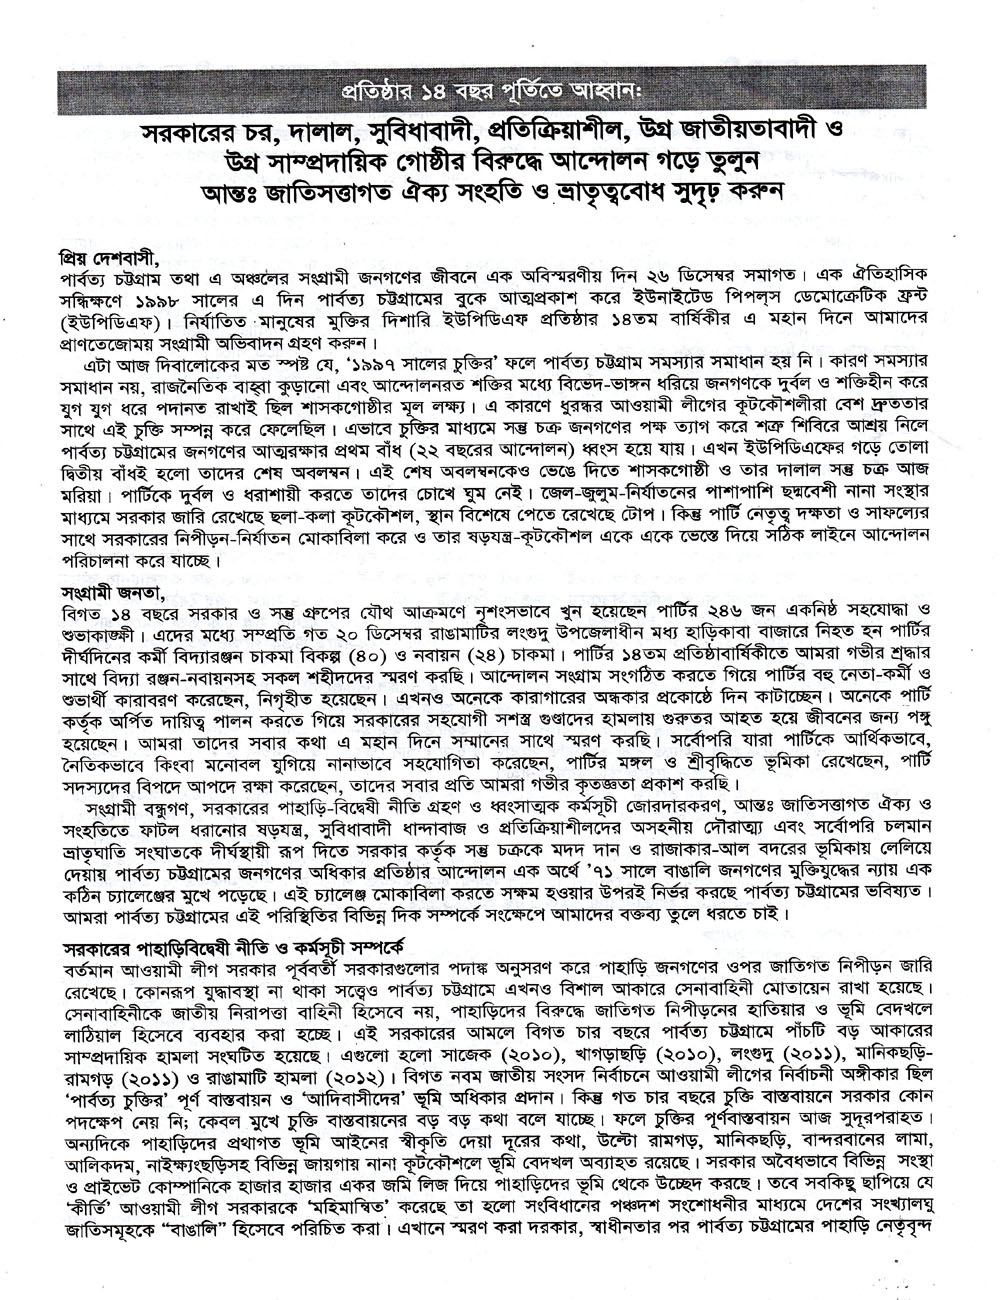 14. Leaflet on 14th founding anniversary, page-1